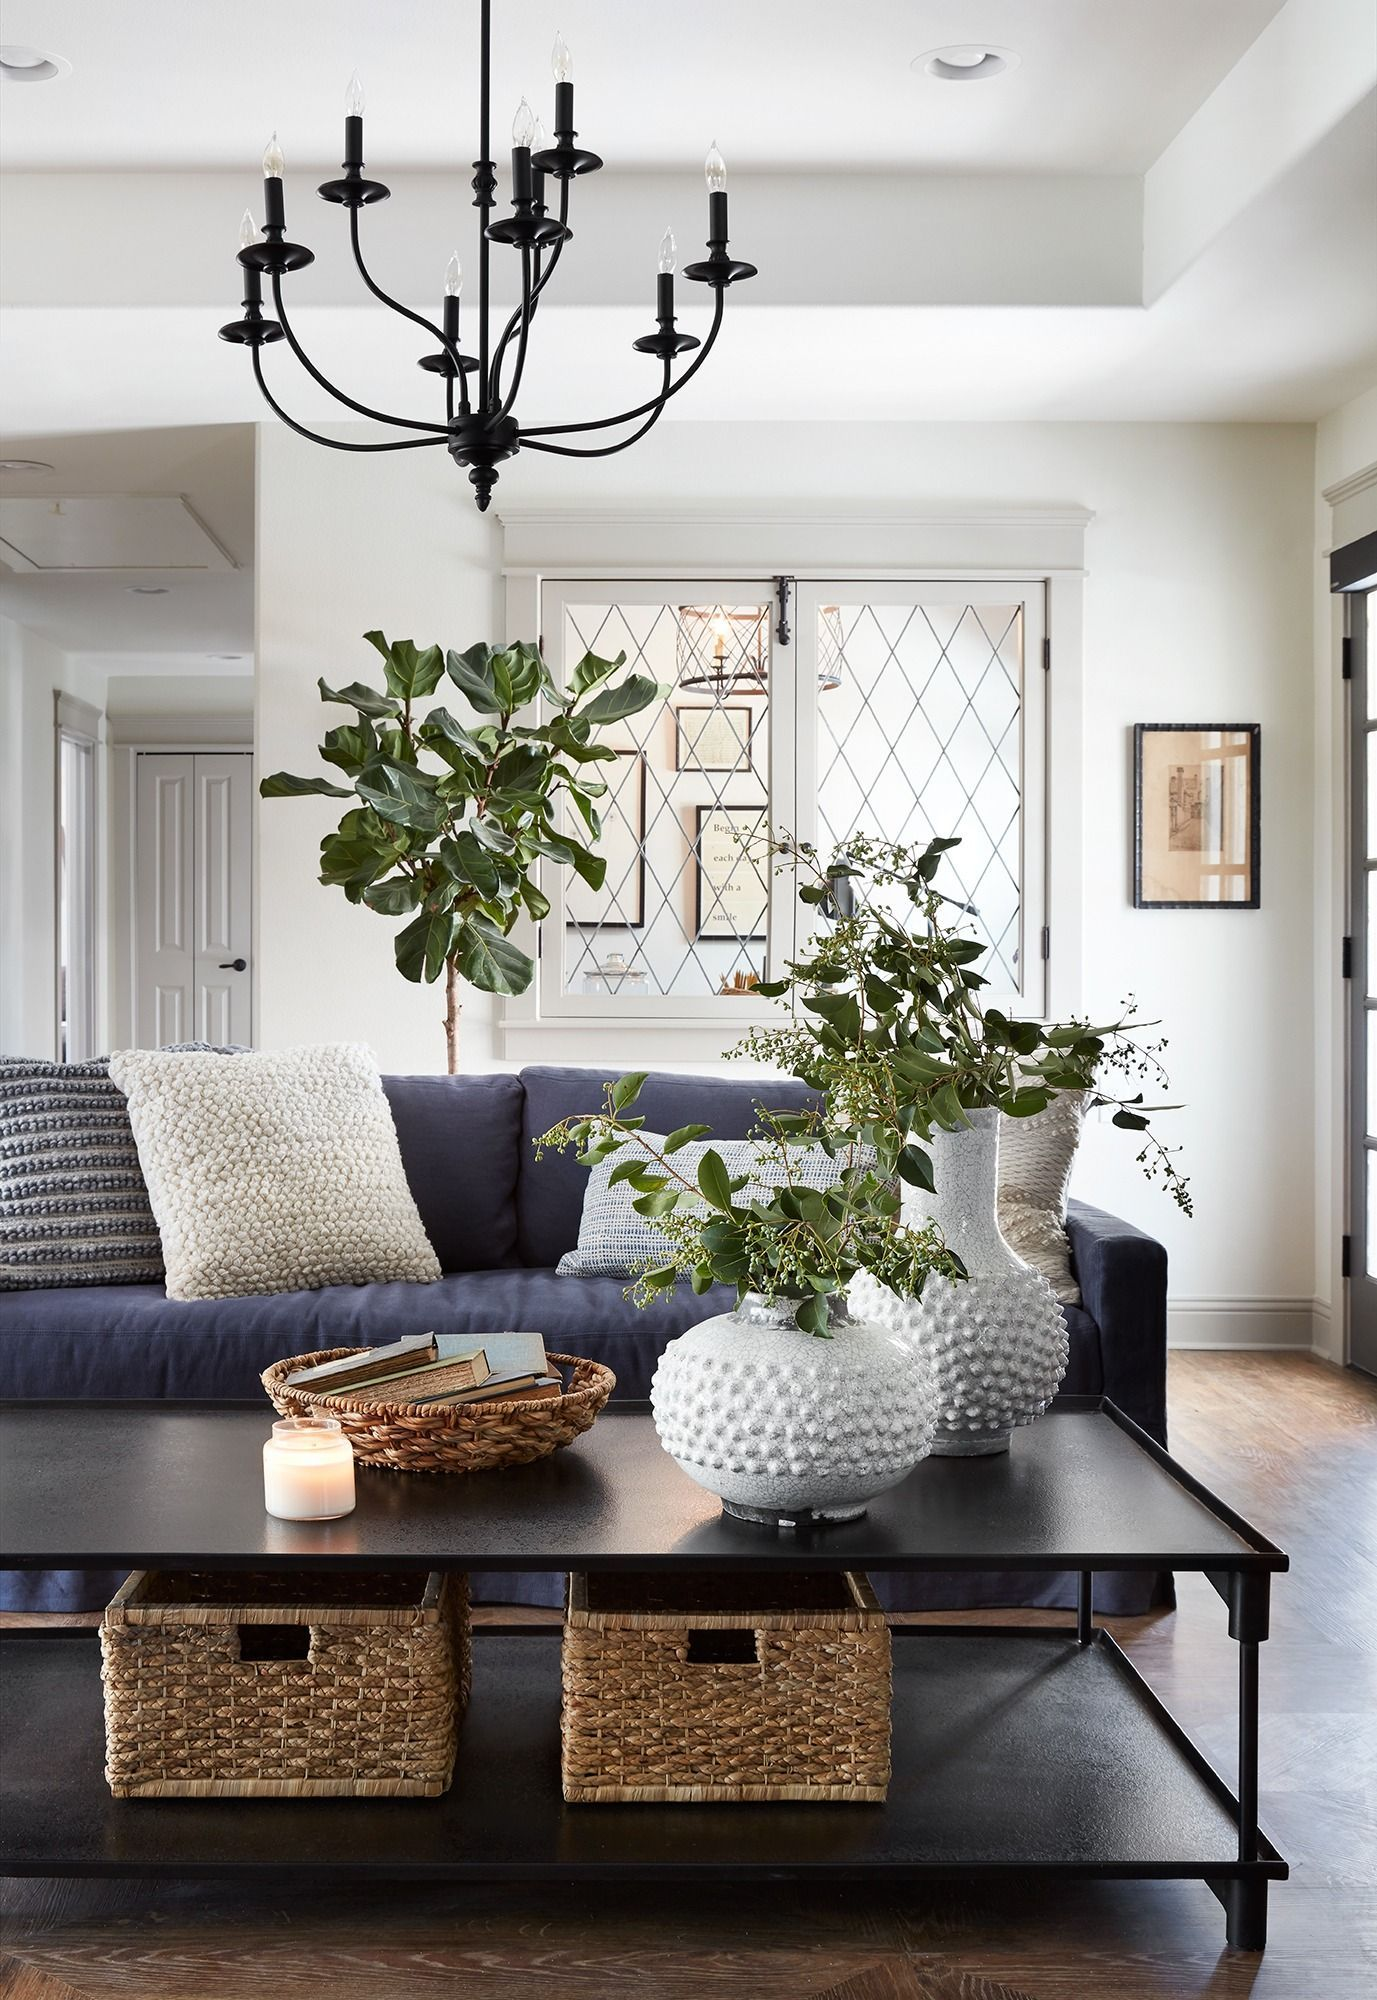 Images Of Small Decorated Living Rooms Wall Prints For Room Perth Diy Decorating Ideas Inspiring Designs